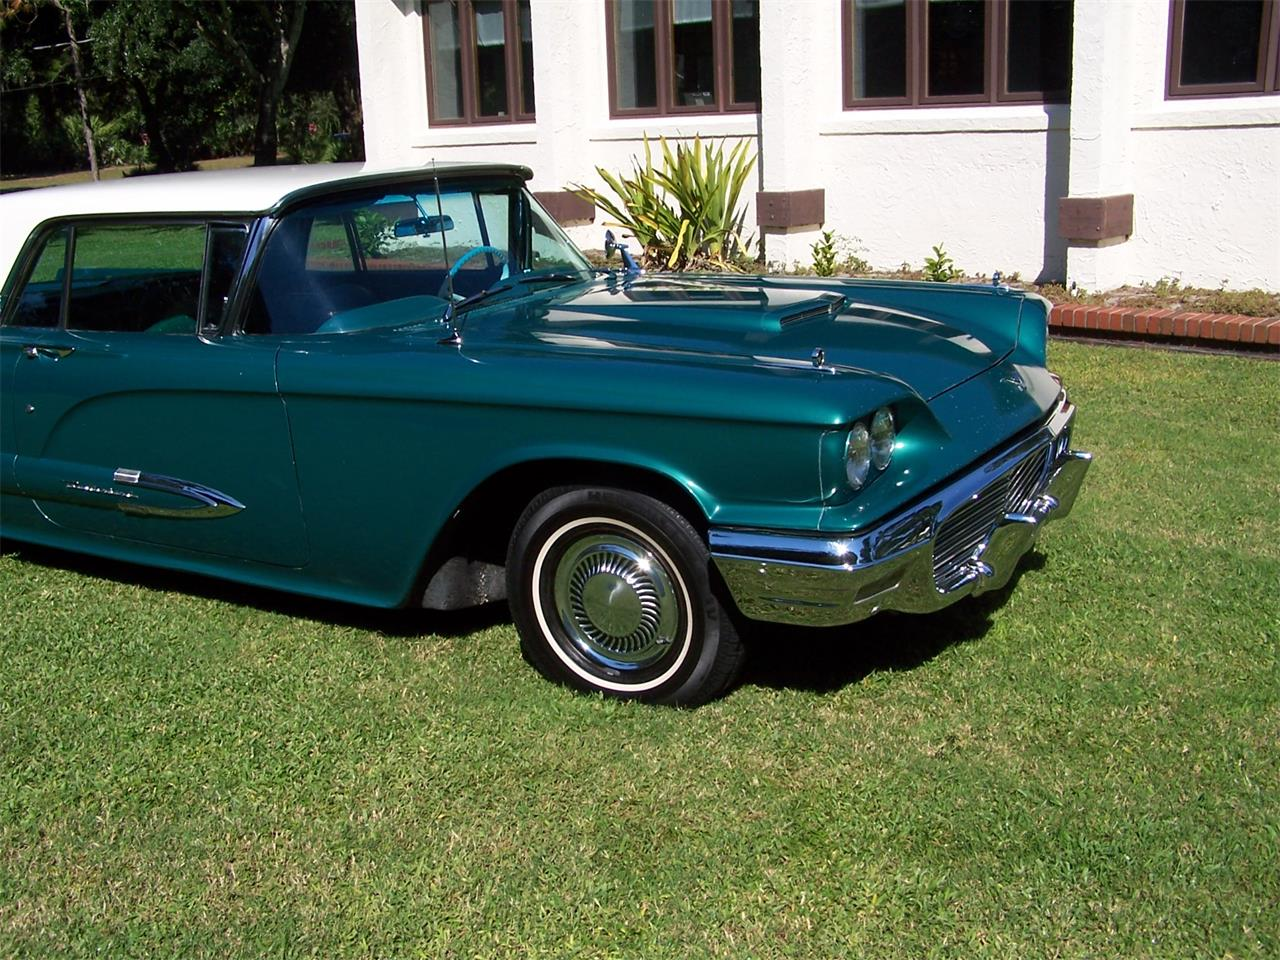 Large Picture of Classic '59 Thunderbird located in Florida - $15,500.00 Offered by a Private Seller - LLRY